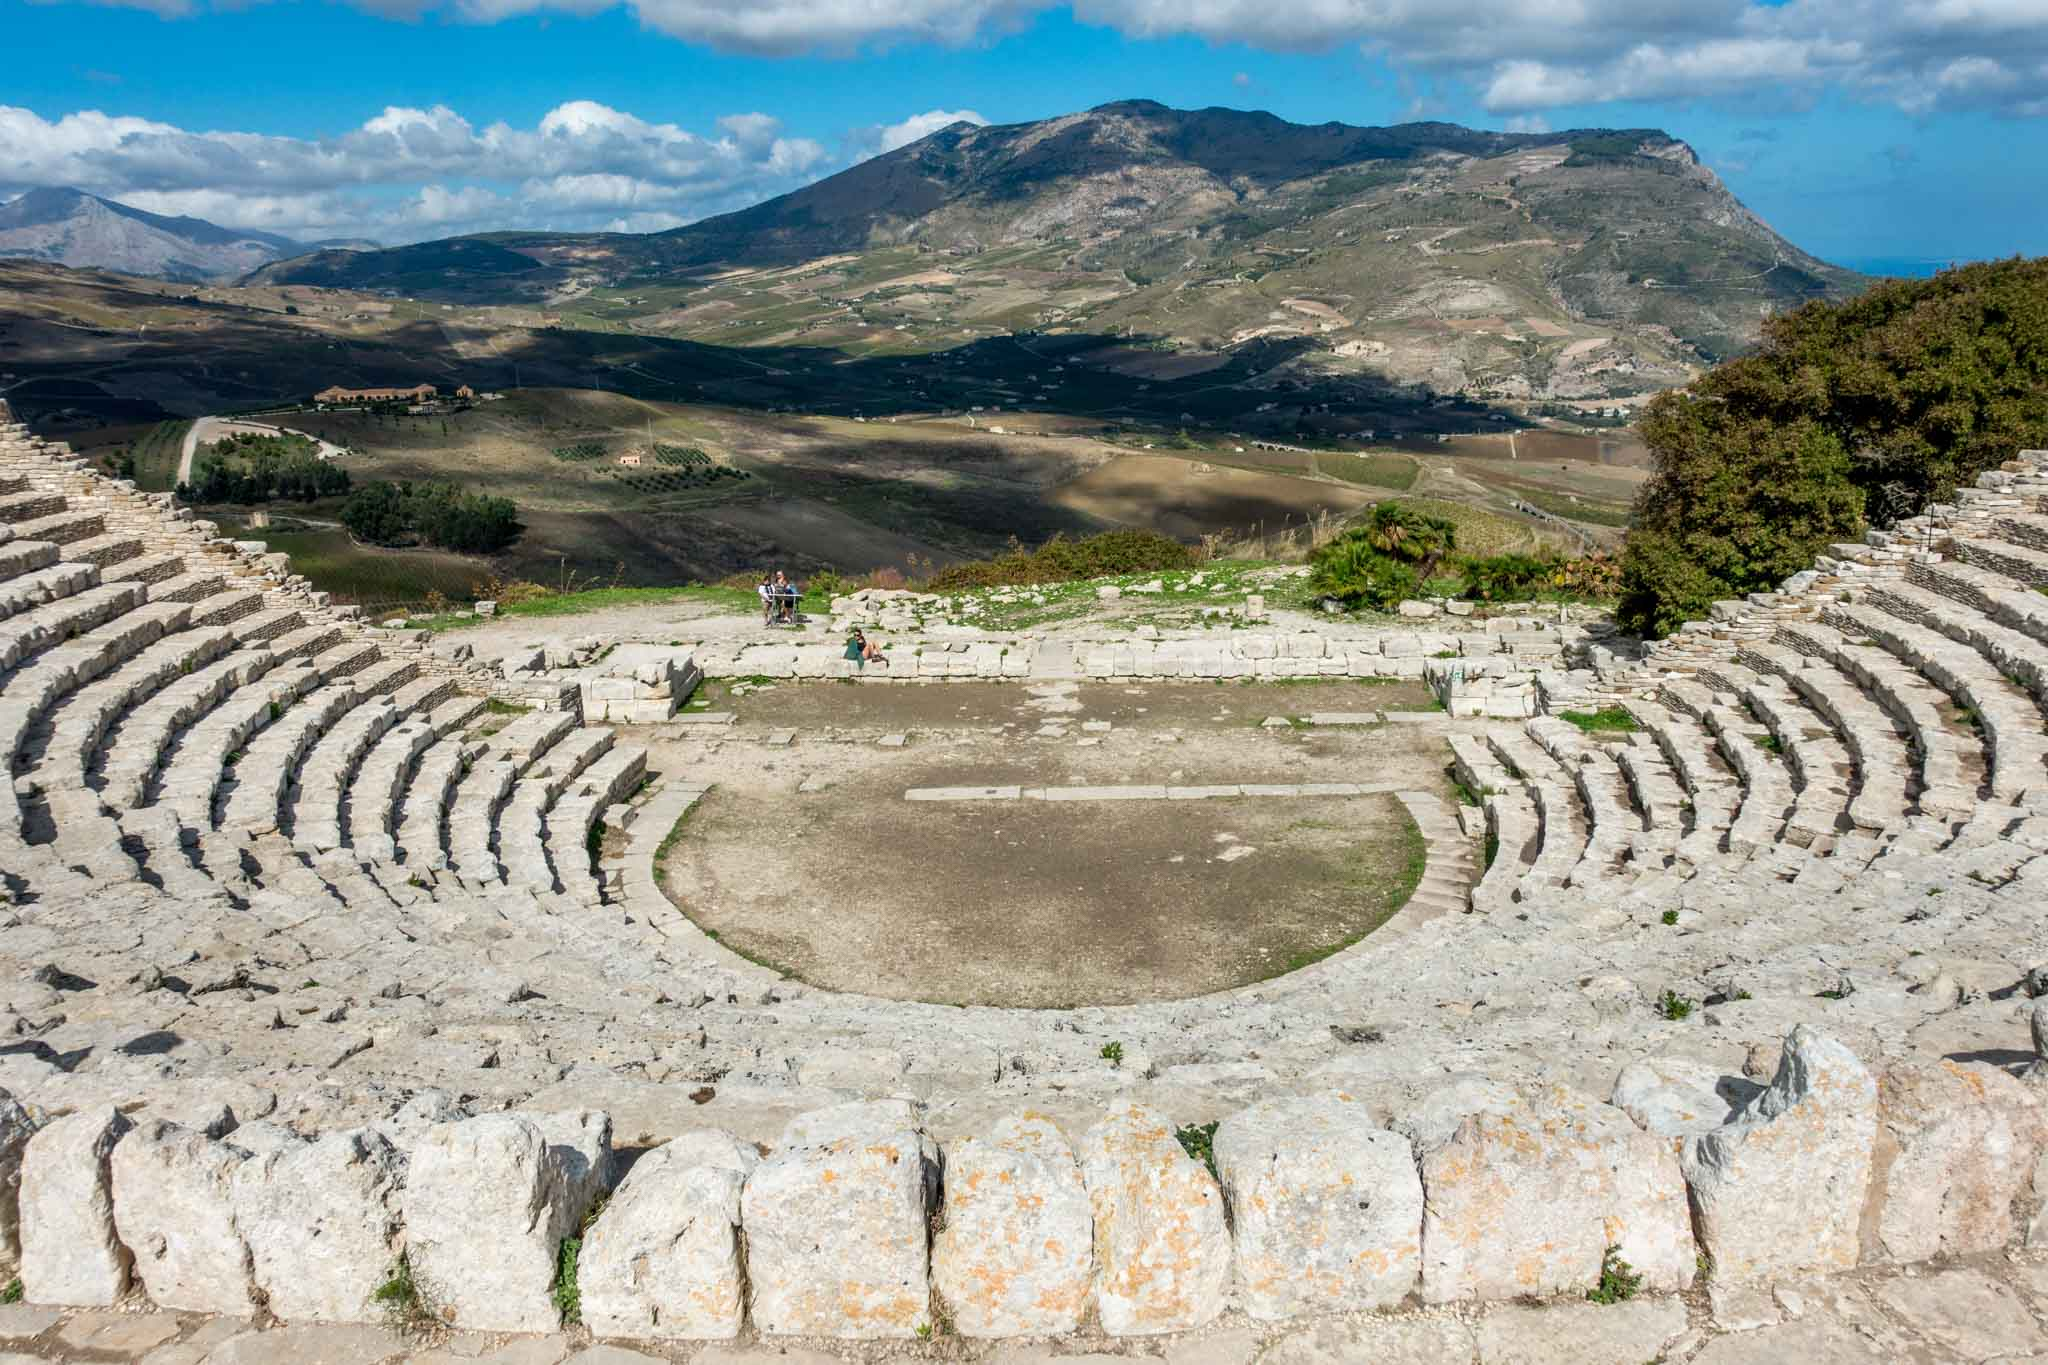 View of mountains and valley from the Segesta amphitheater in Sicily